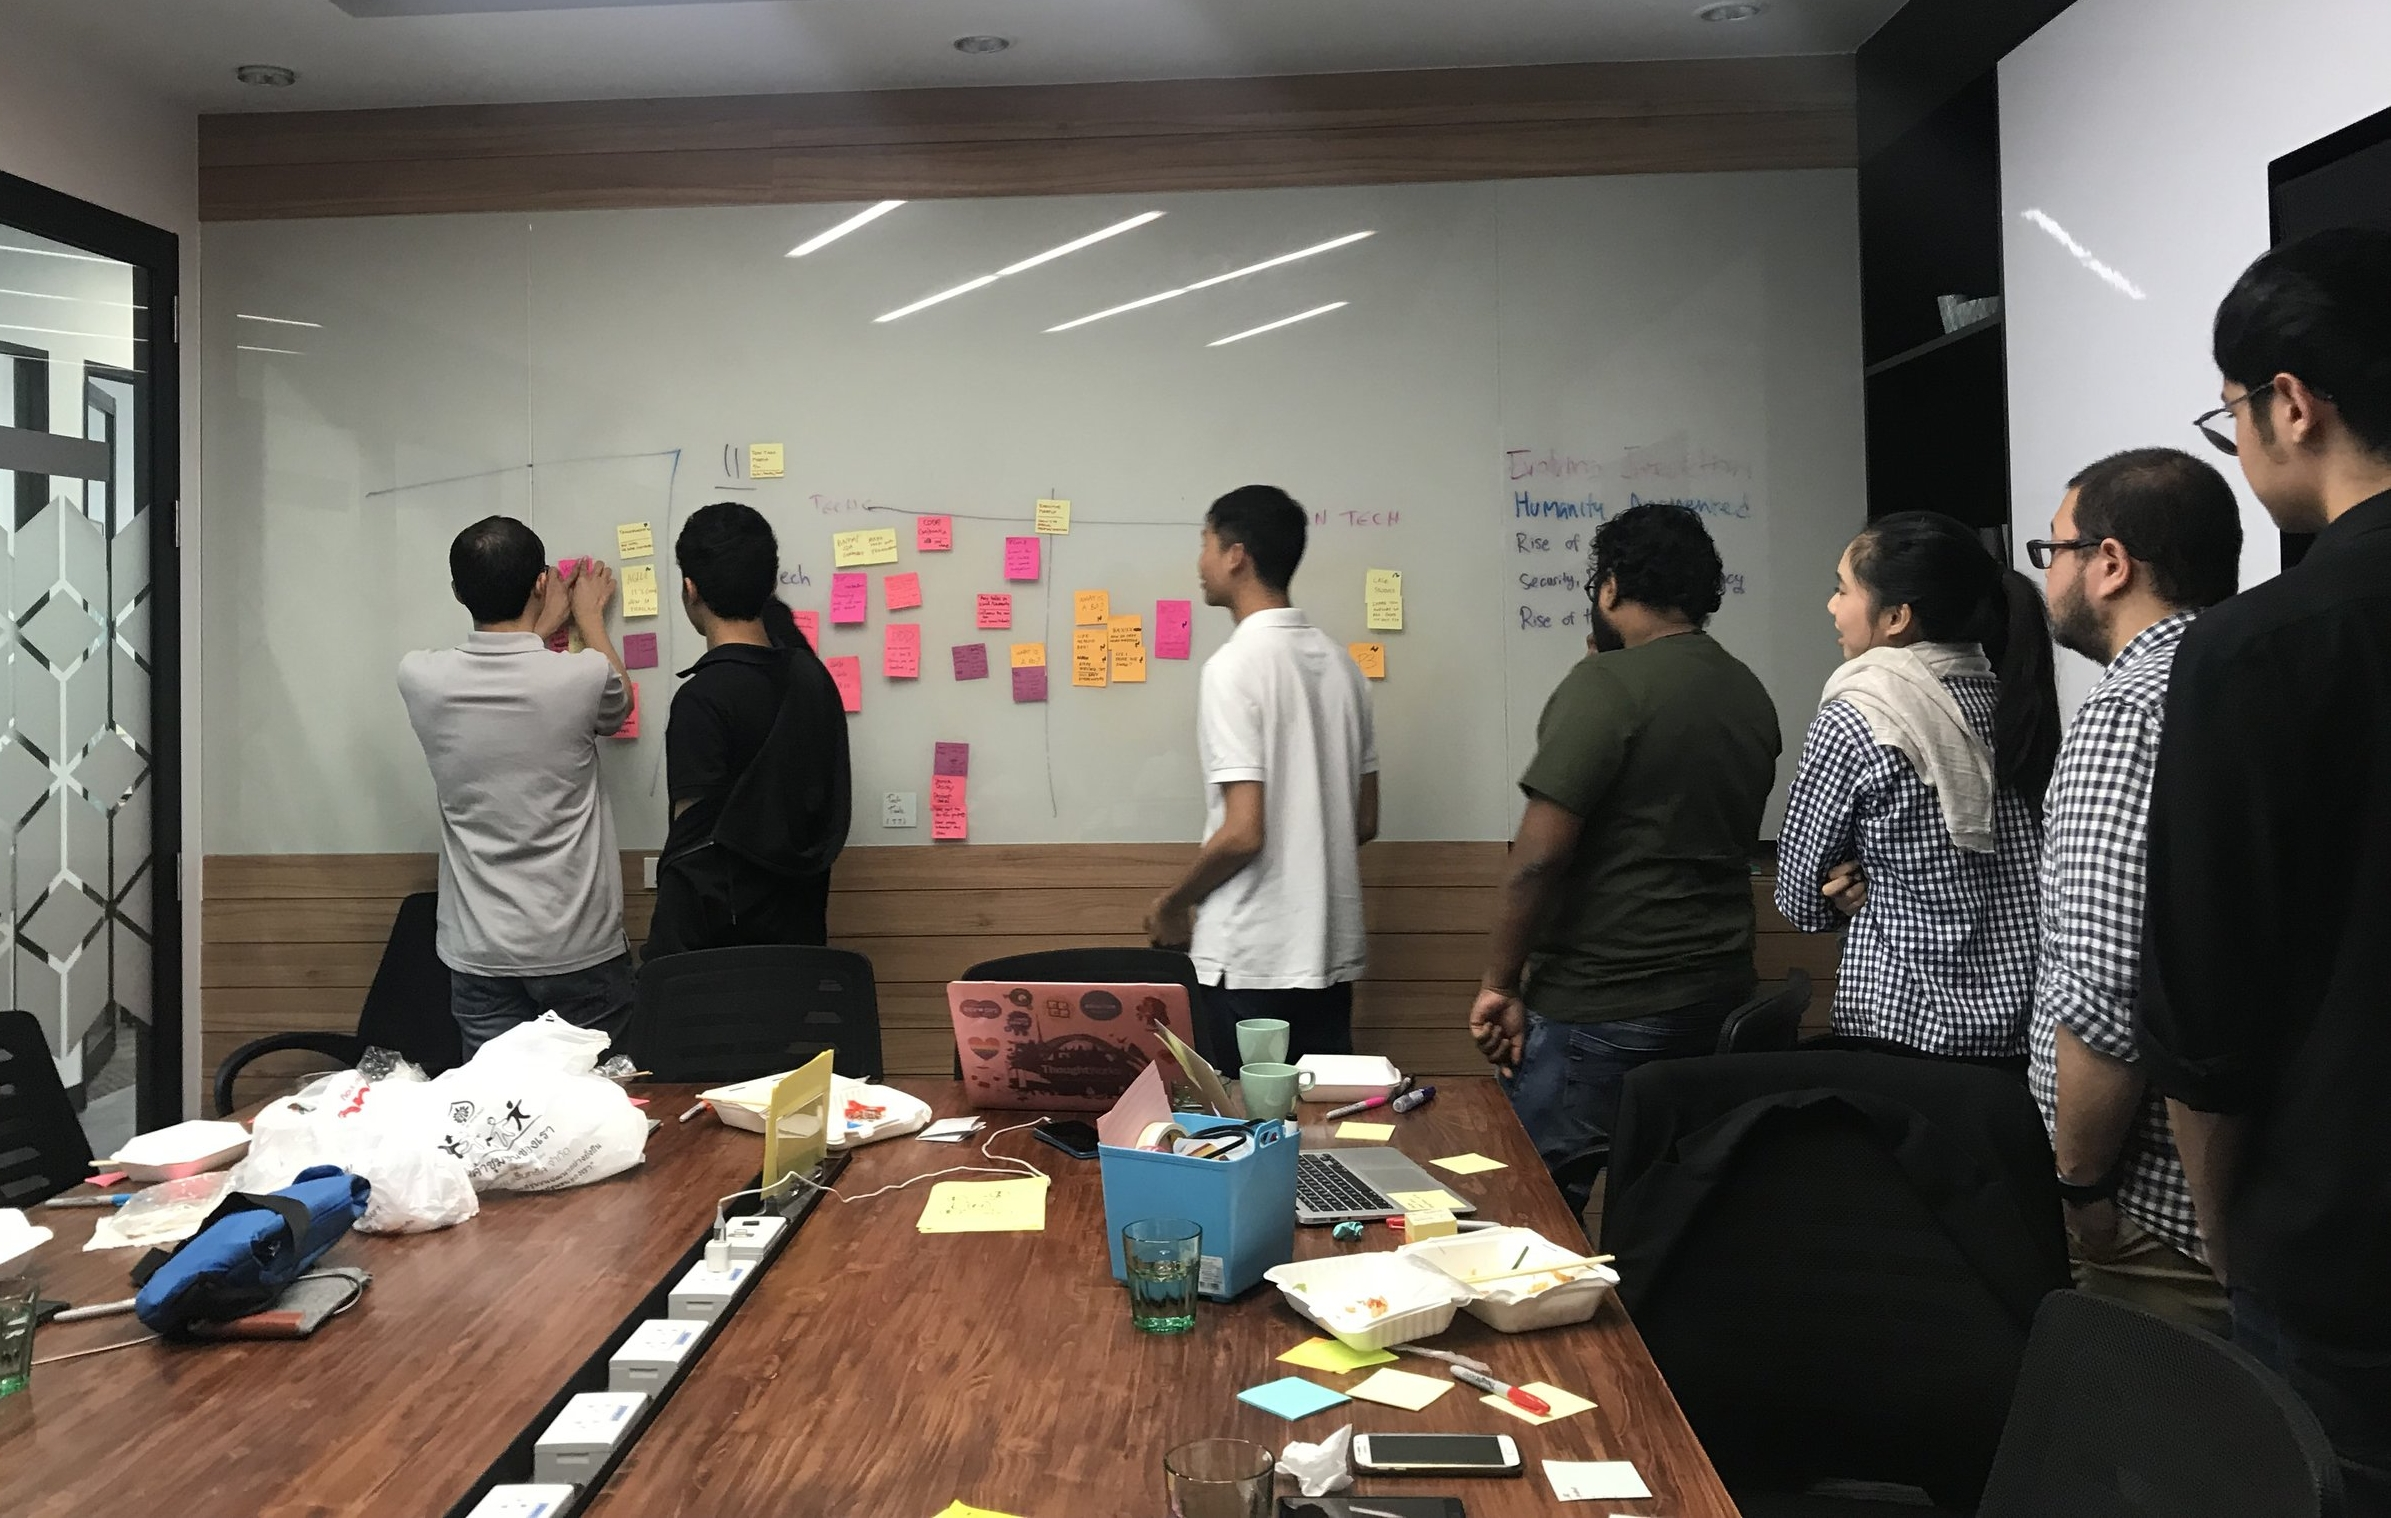 January - getting ideas on meetup topics for 2018.